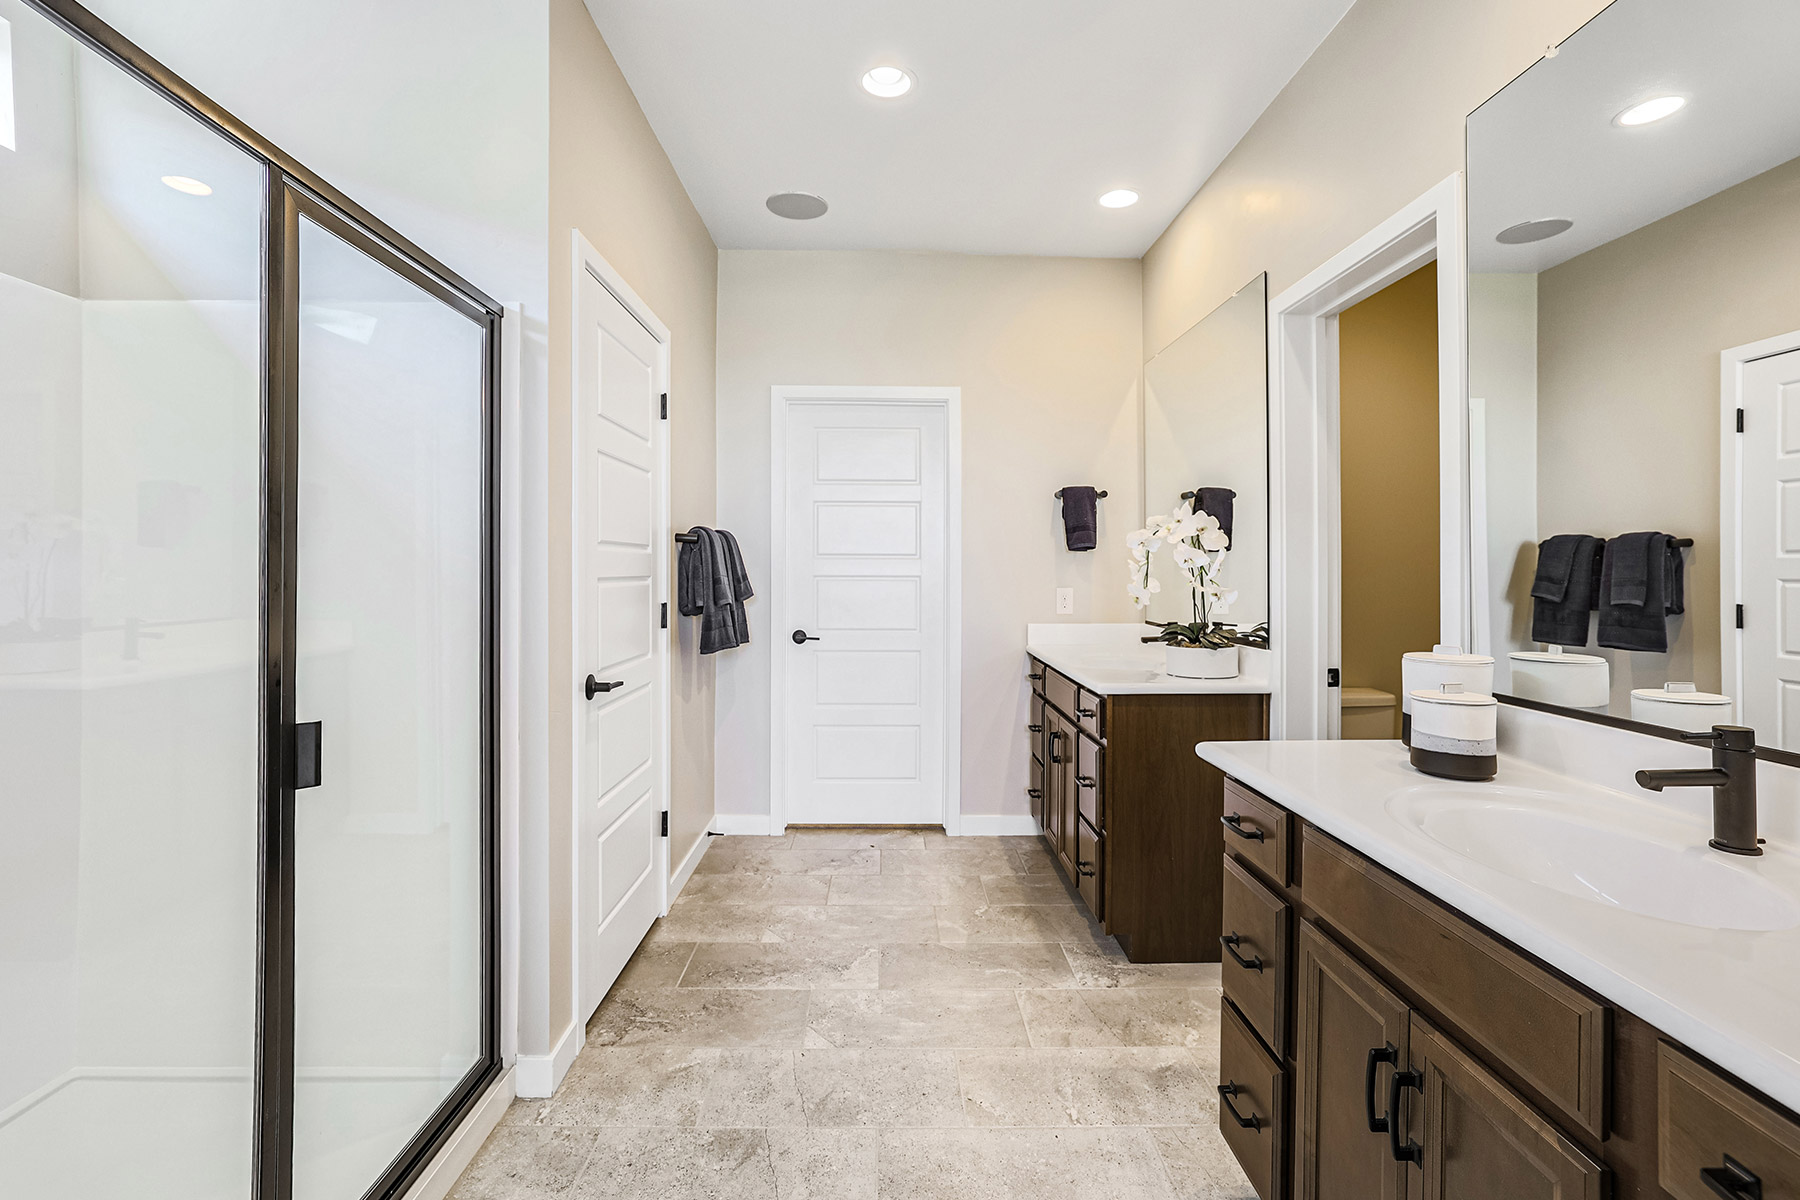 Aries Plan Bath at Azure Canyon in Litchfield Park Arizona by Mattamy Homes